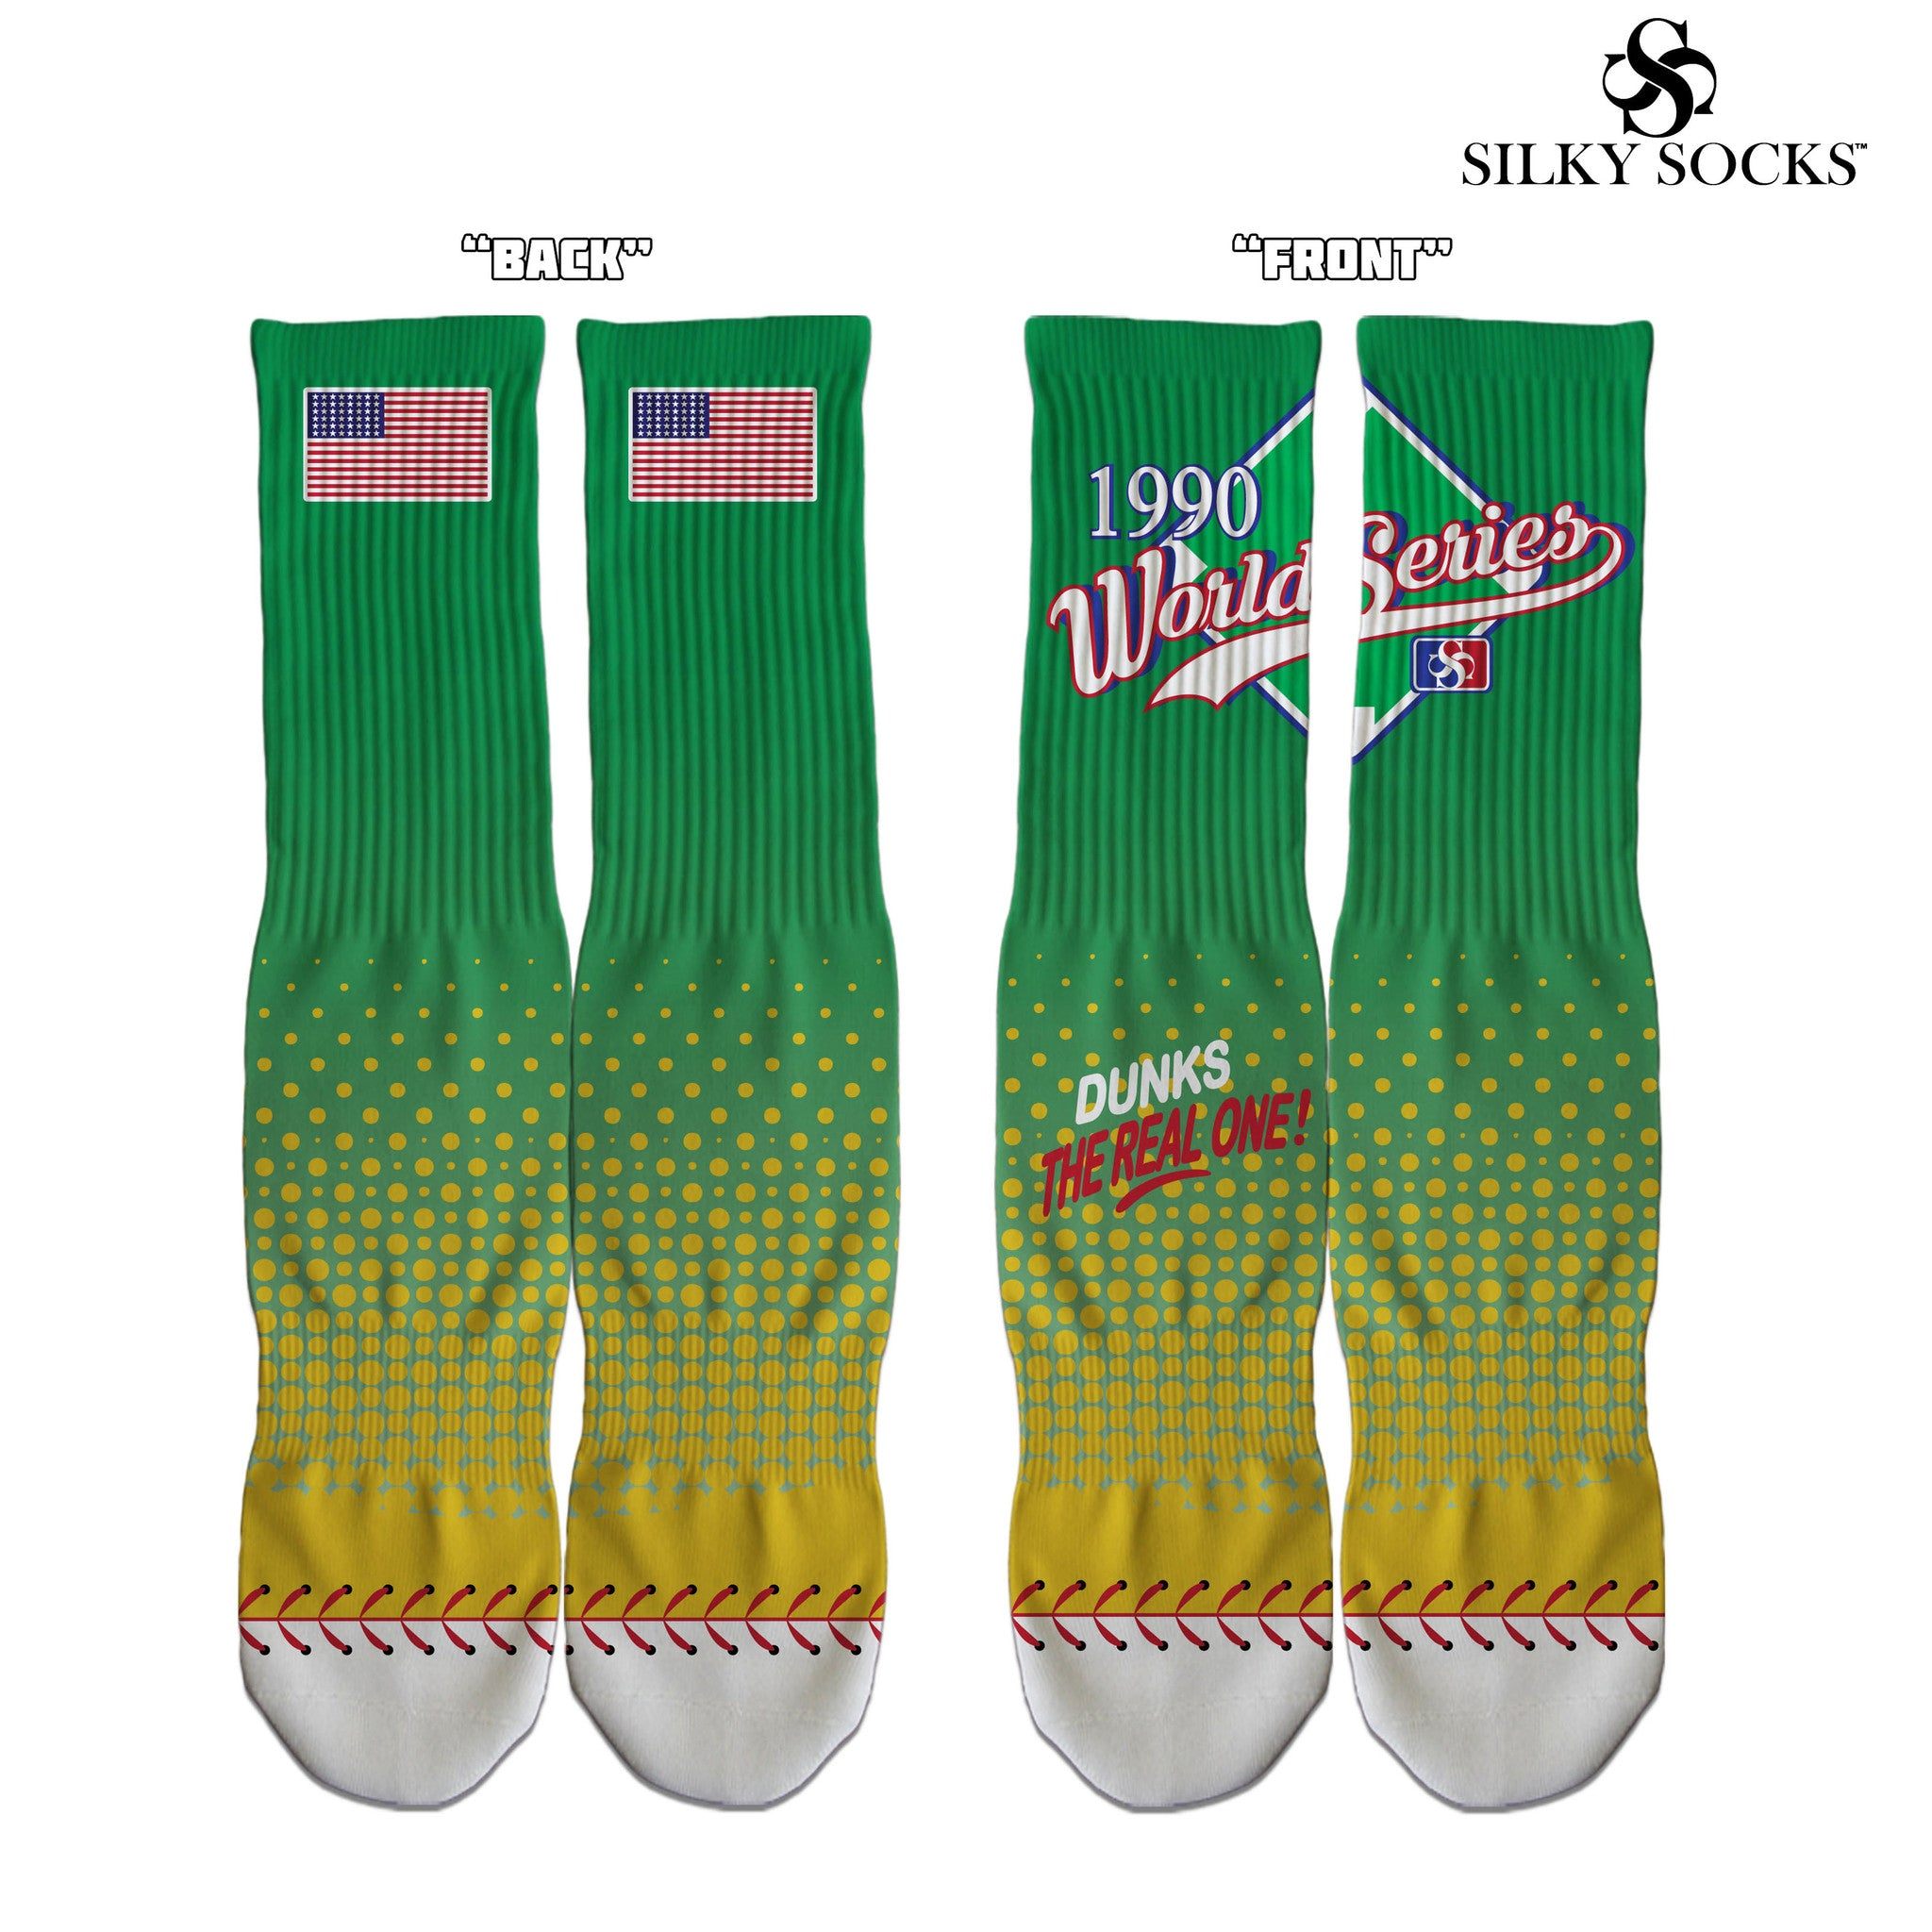 Buy Men's Socks online